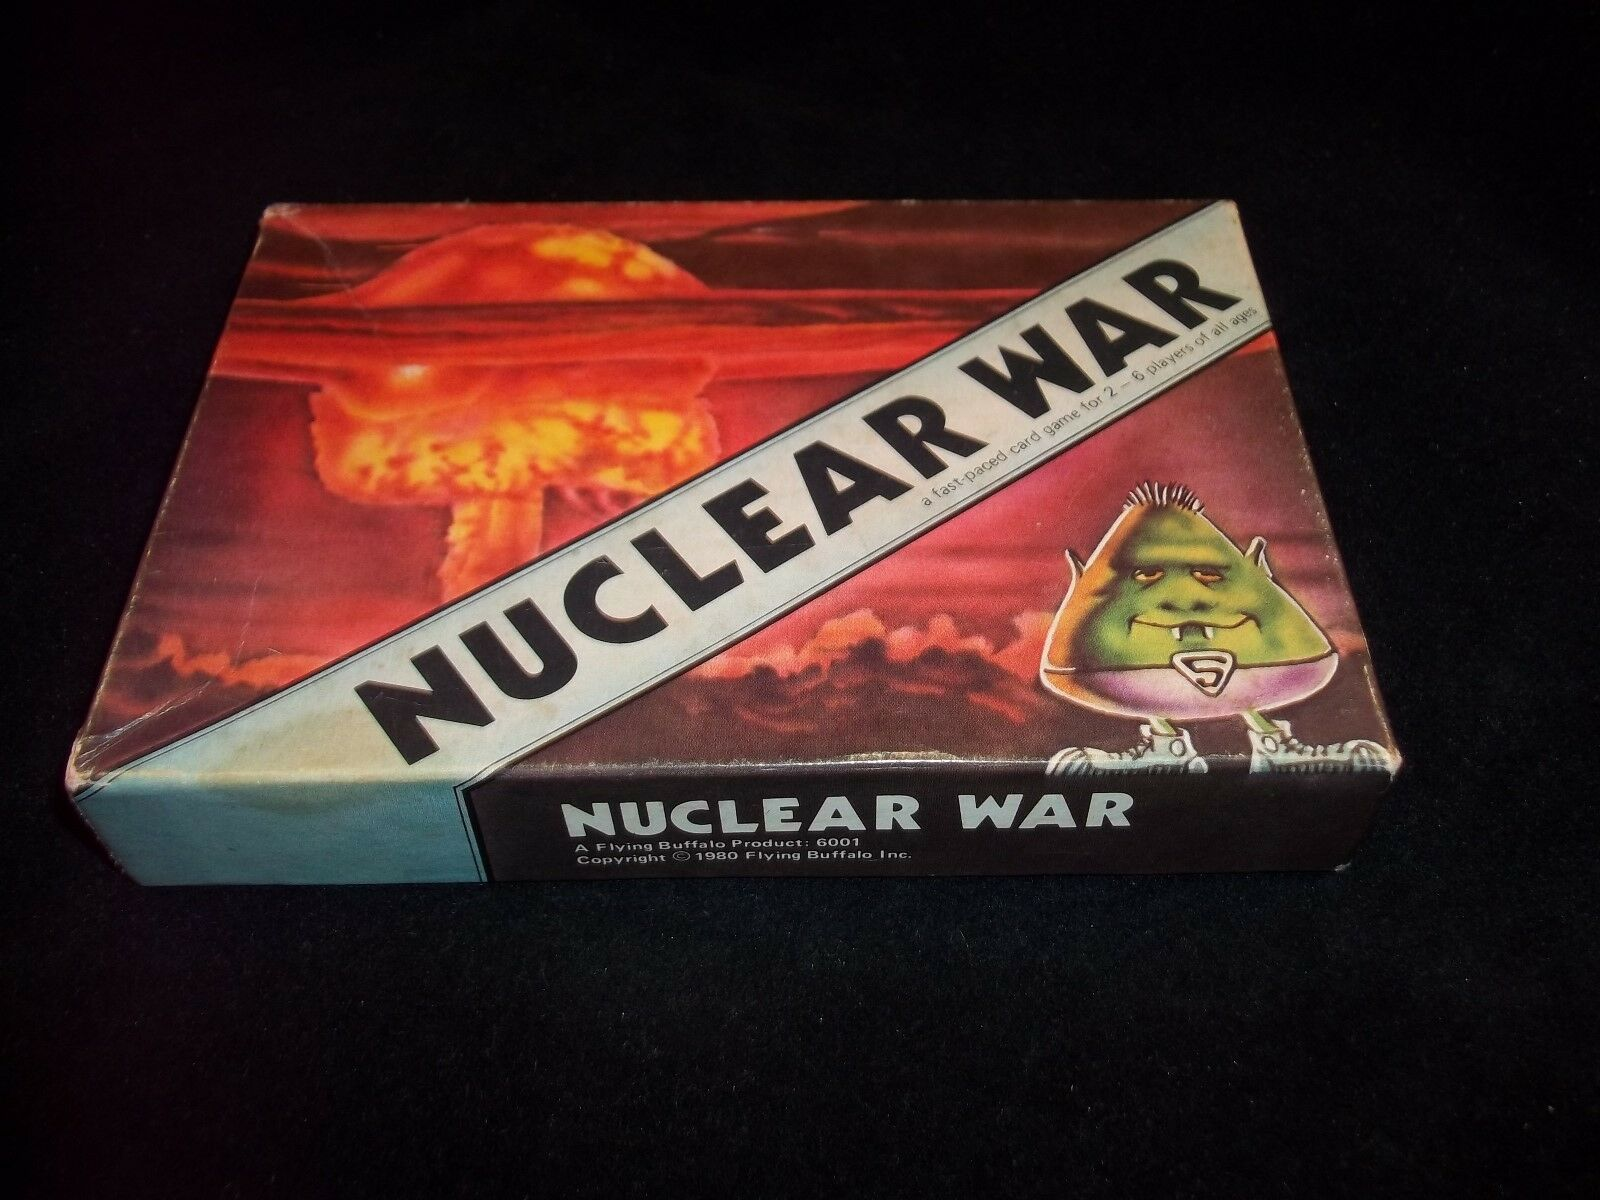 Cold War 1980 Flying Buffalo Complete NUCLEAR WAR Game